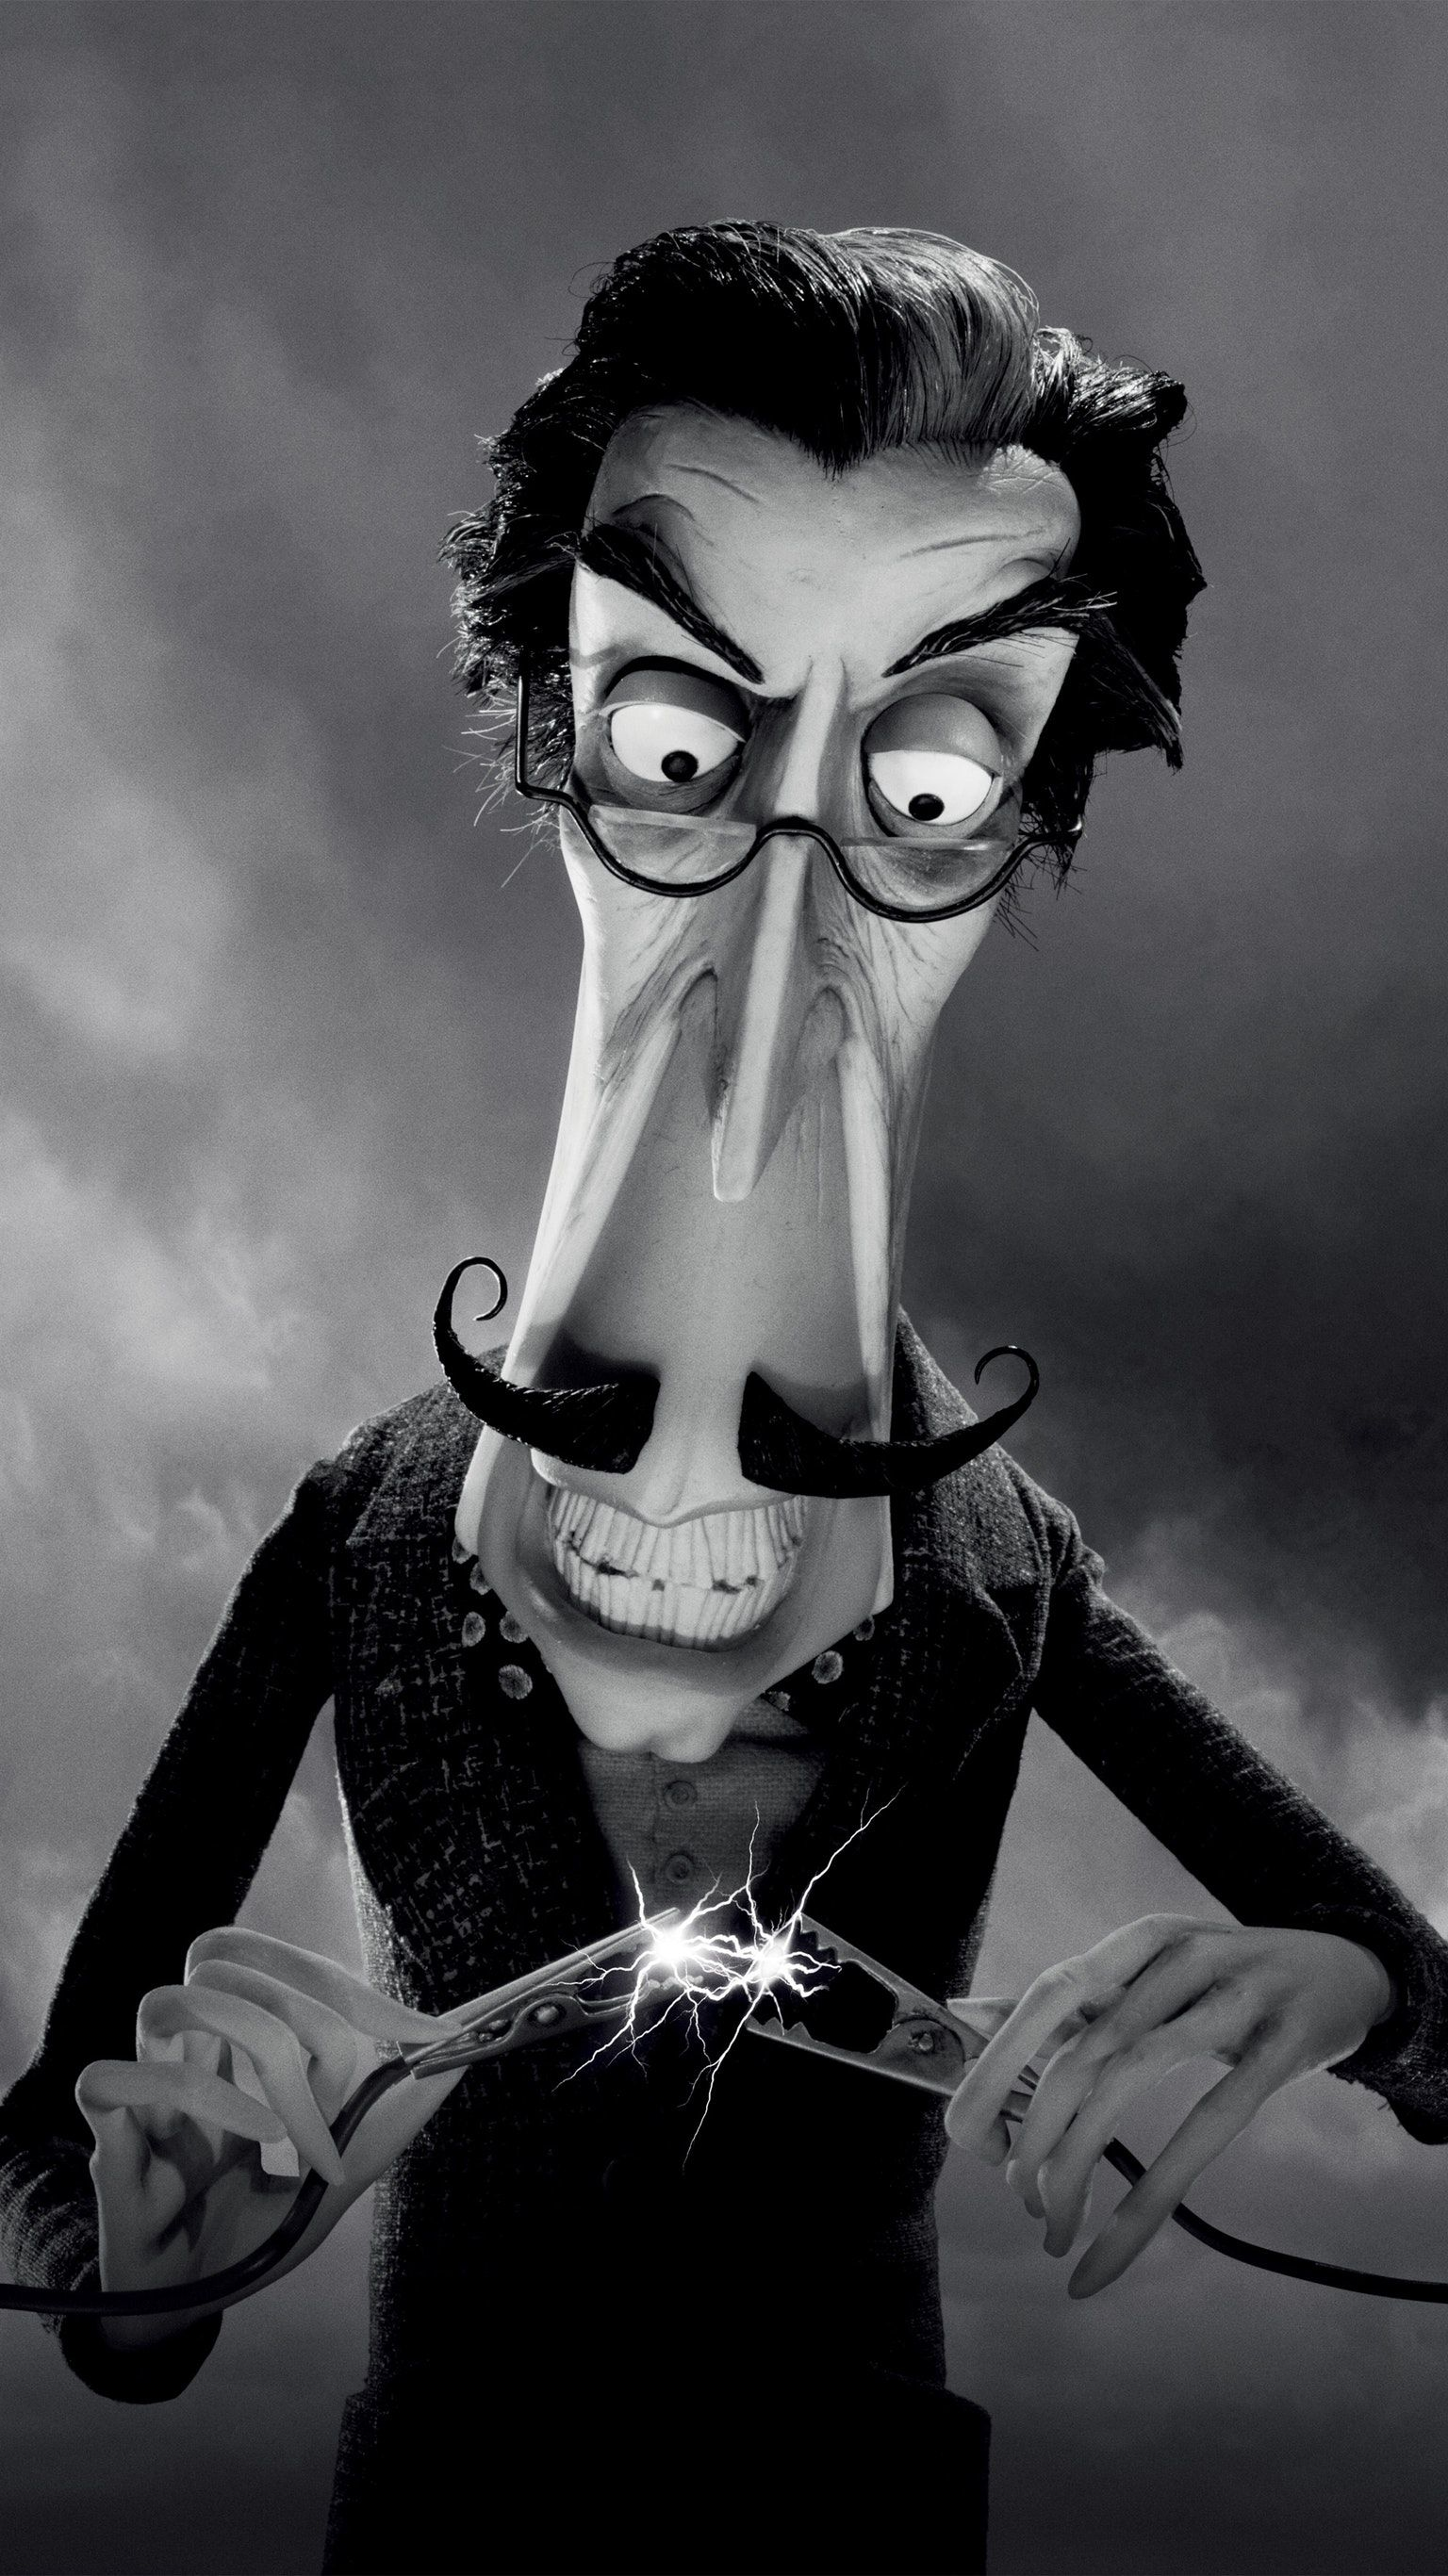 Frankenweenie 2012 Phone Wallpaper Wallpaper Movie Wallpapers The Greatest Showman